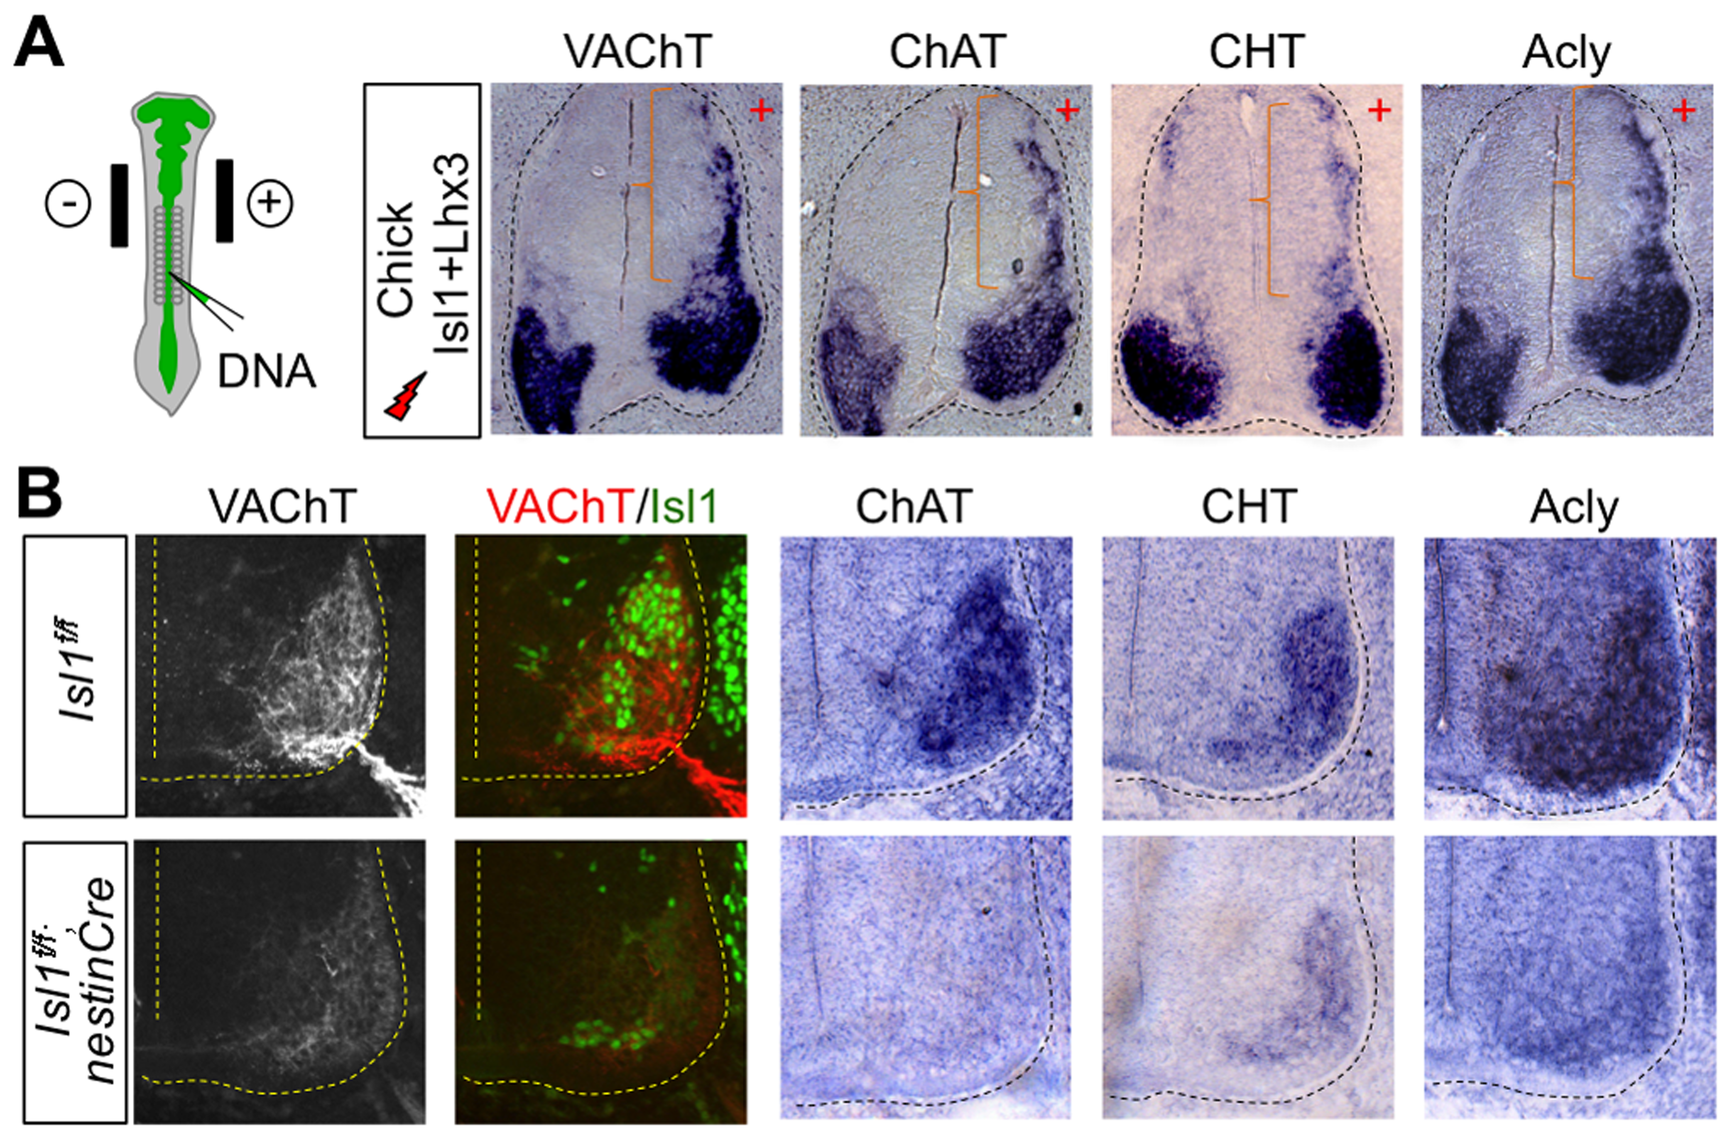 The Isl1-Lhx3-hexamer plays a crucial role in inducing the expression of cholinergic pathway genes in the developing spinal MNs.